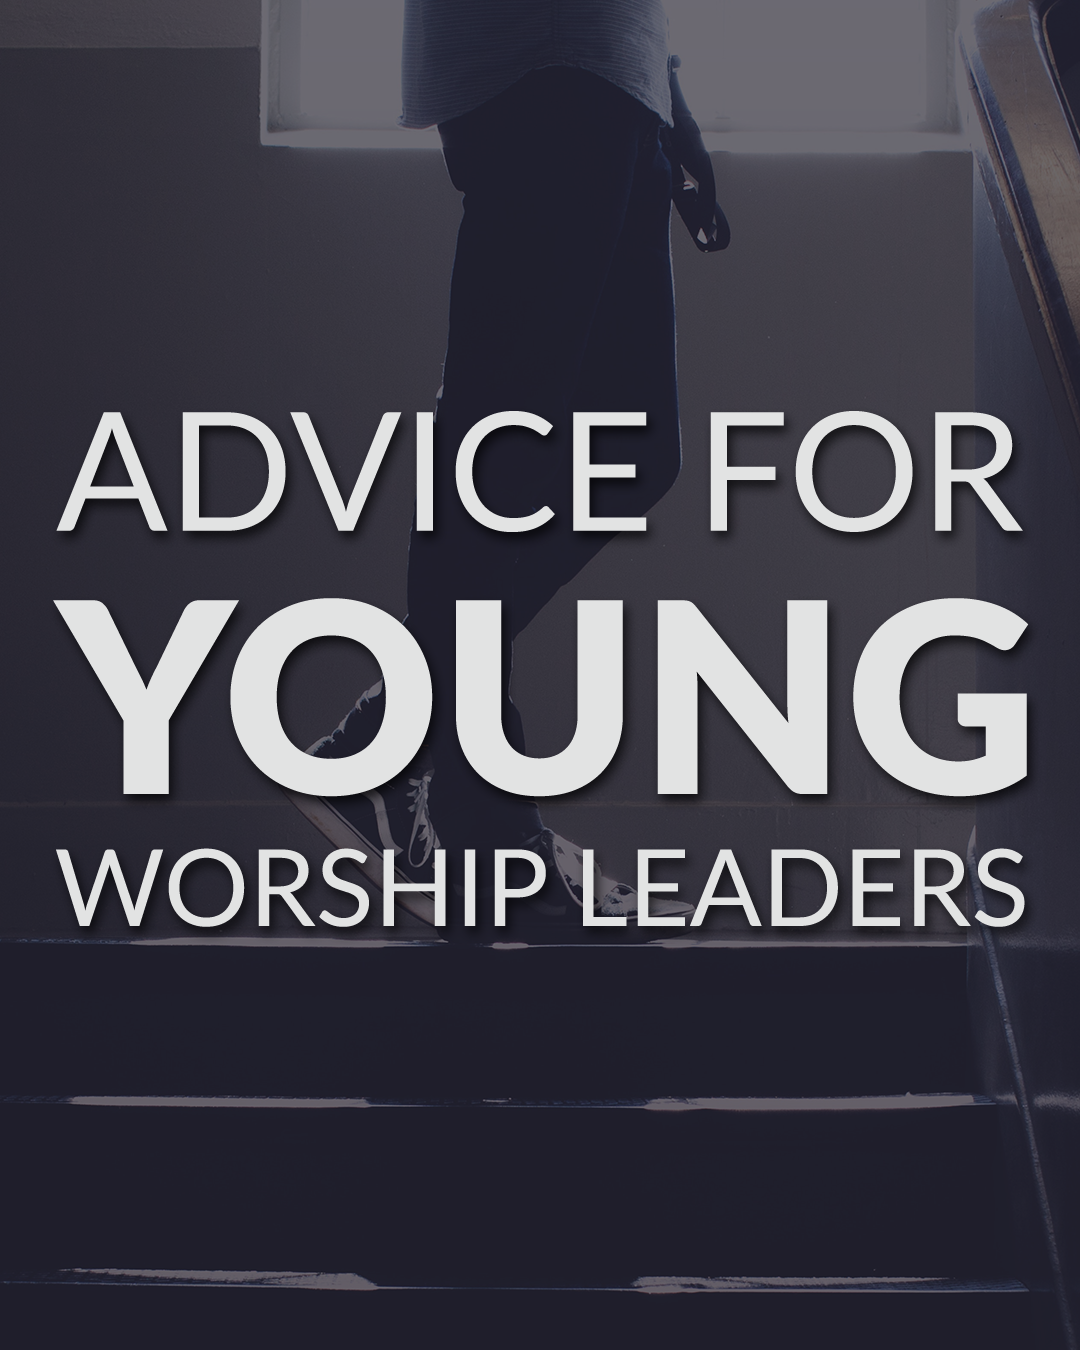 Advice for young worship leaders